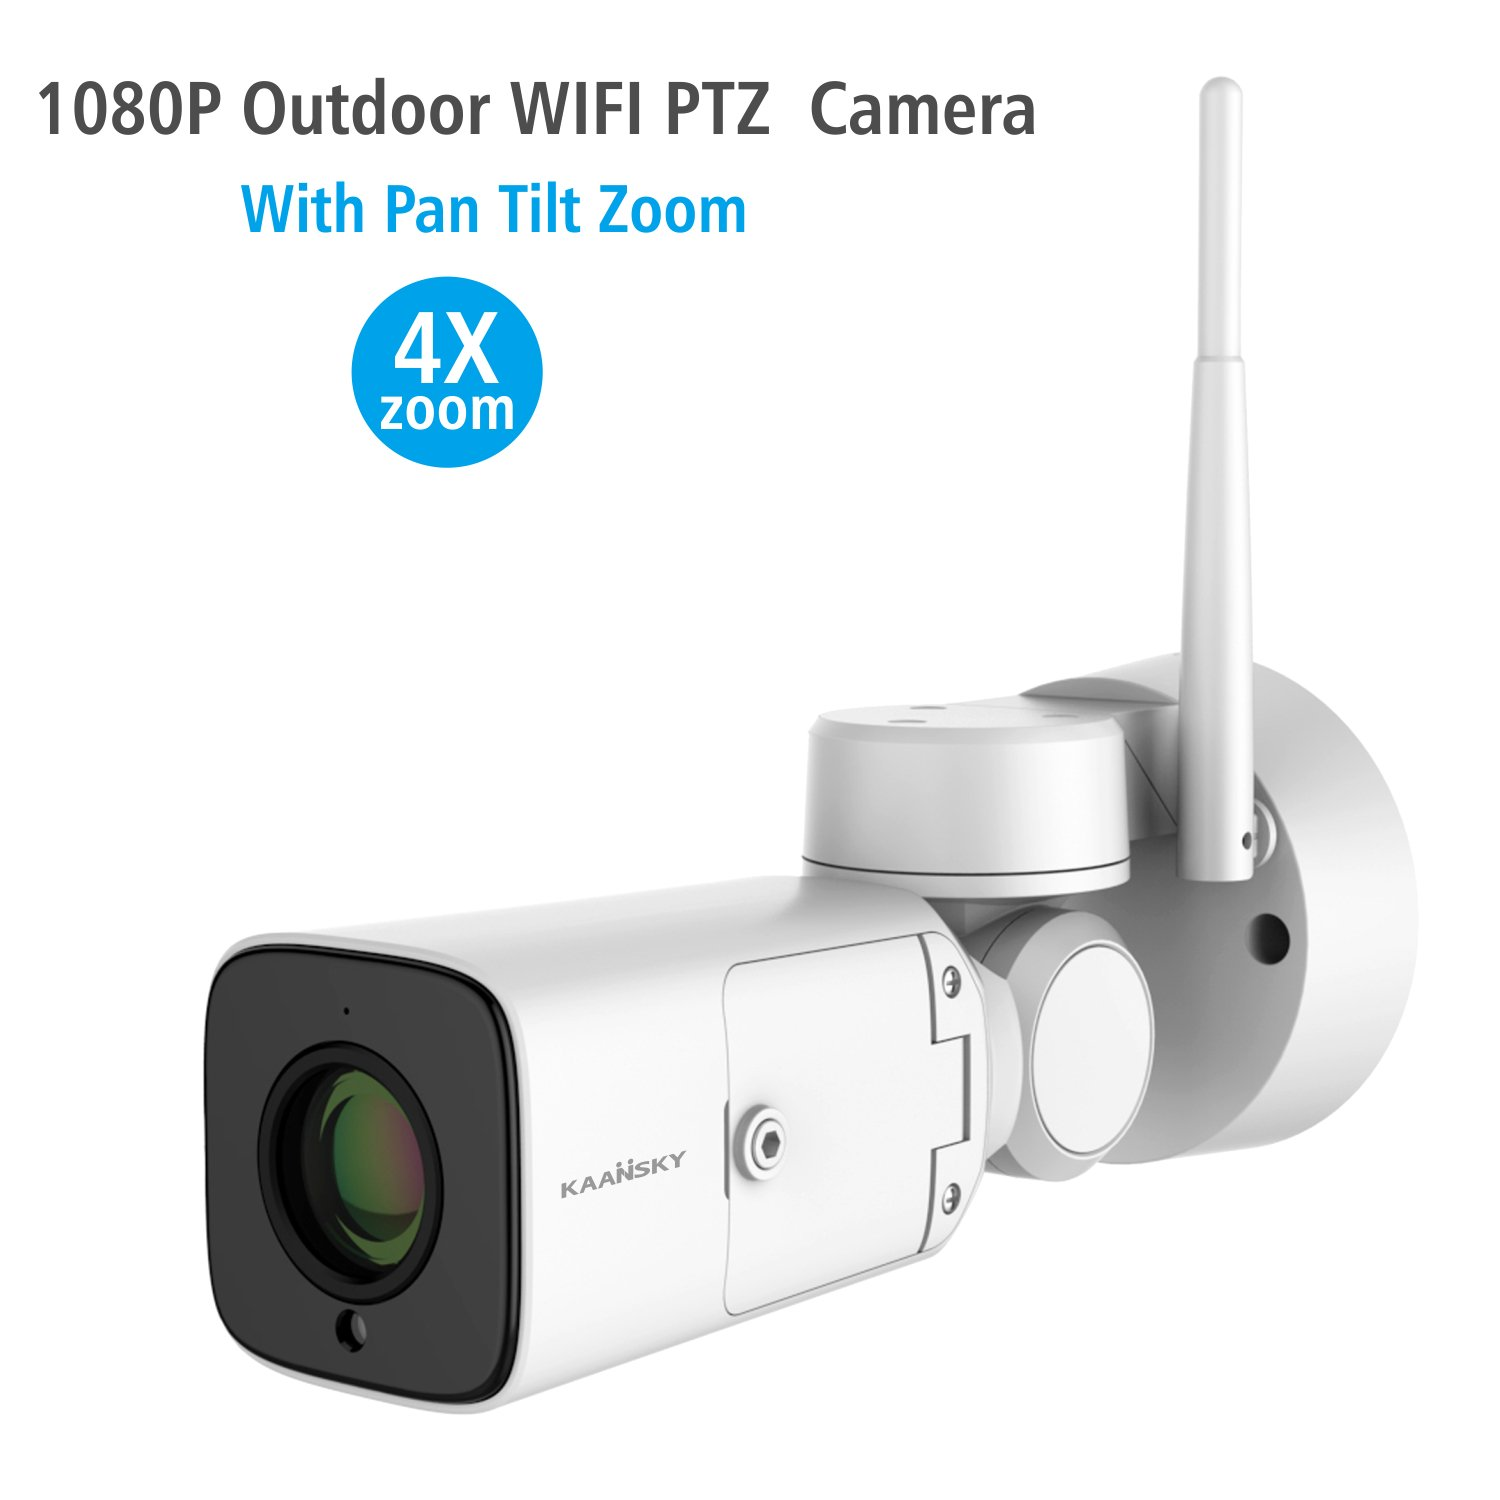 KAANSKY Wireless camera for Home Security Outdoor With HD 1080P 2MP IP Bullet Camera PTZ 4X Zoom AF Lens, Two-Way Audio Night Vision With Motion Detection, Weatherproof IP66 Support 128G SD Card